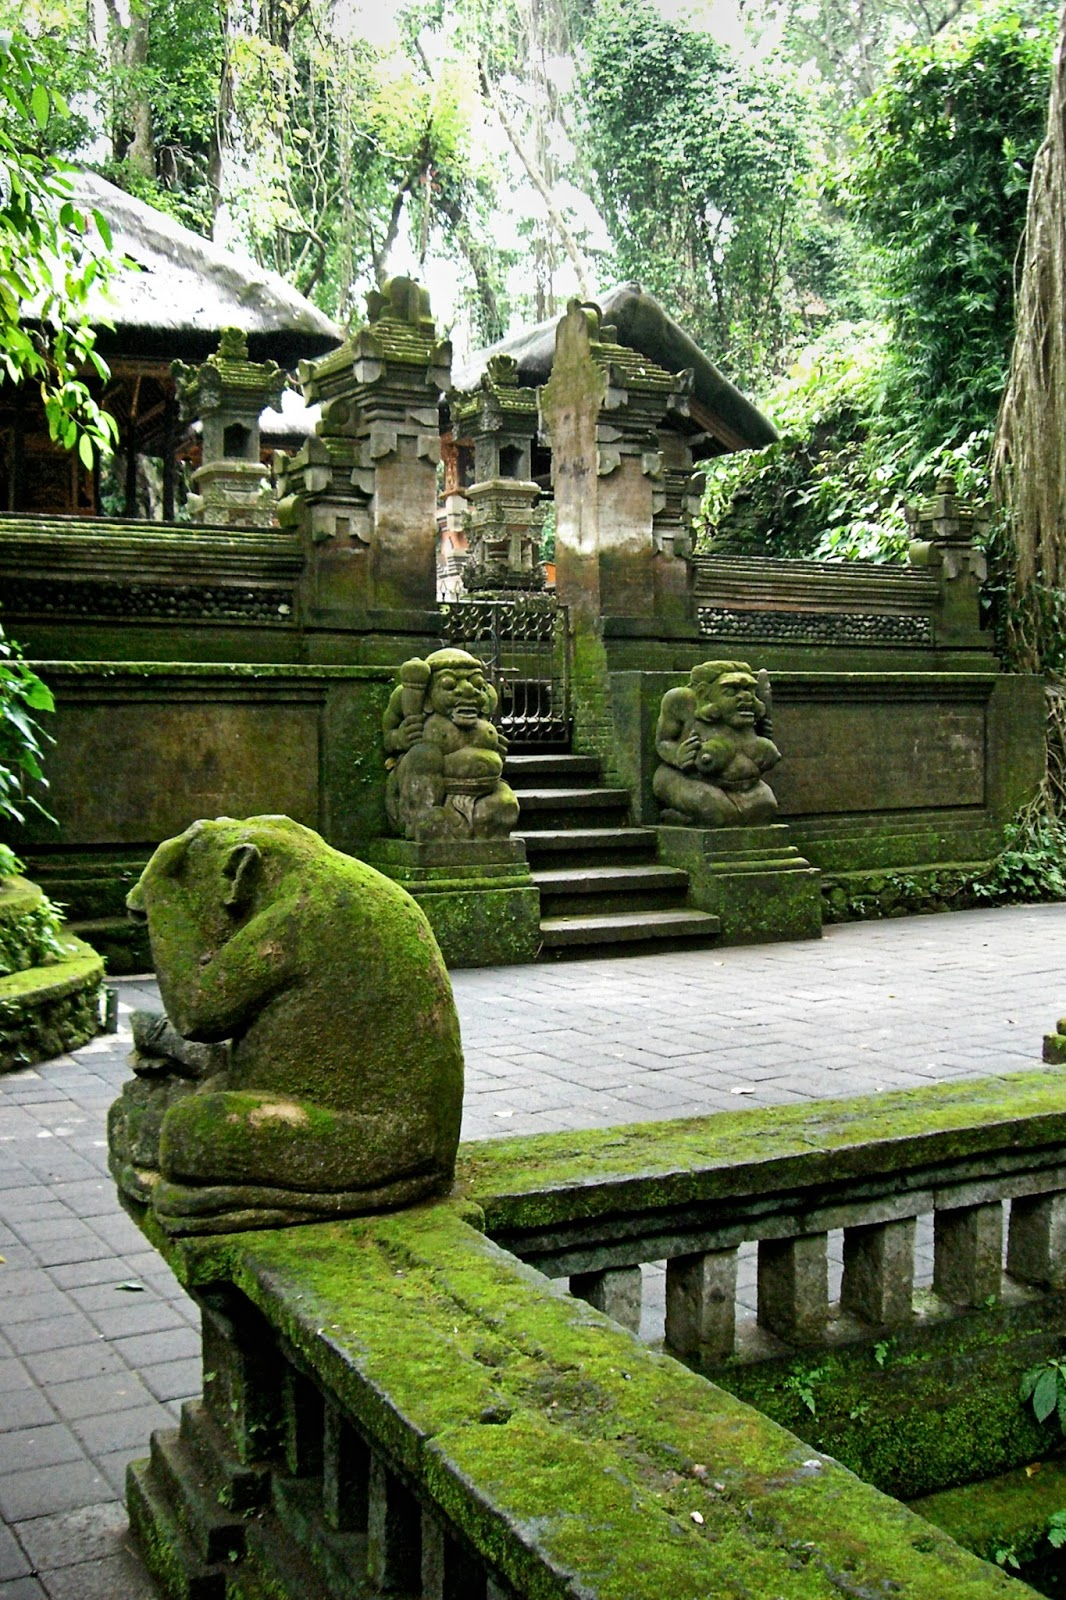 Enchanting Se Asia Bali Indonesia Part Ubud Cultural Statue Long